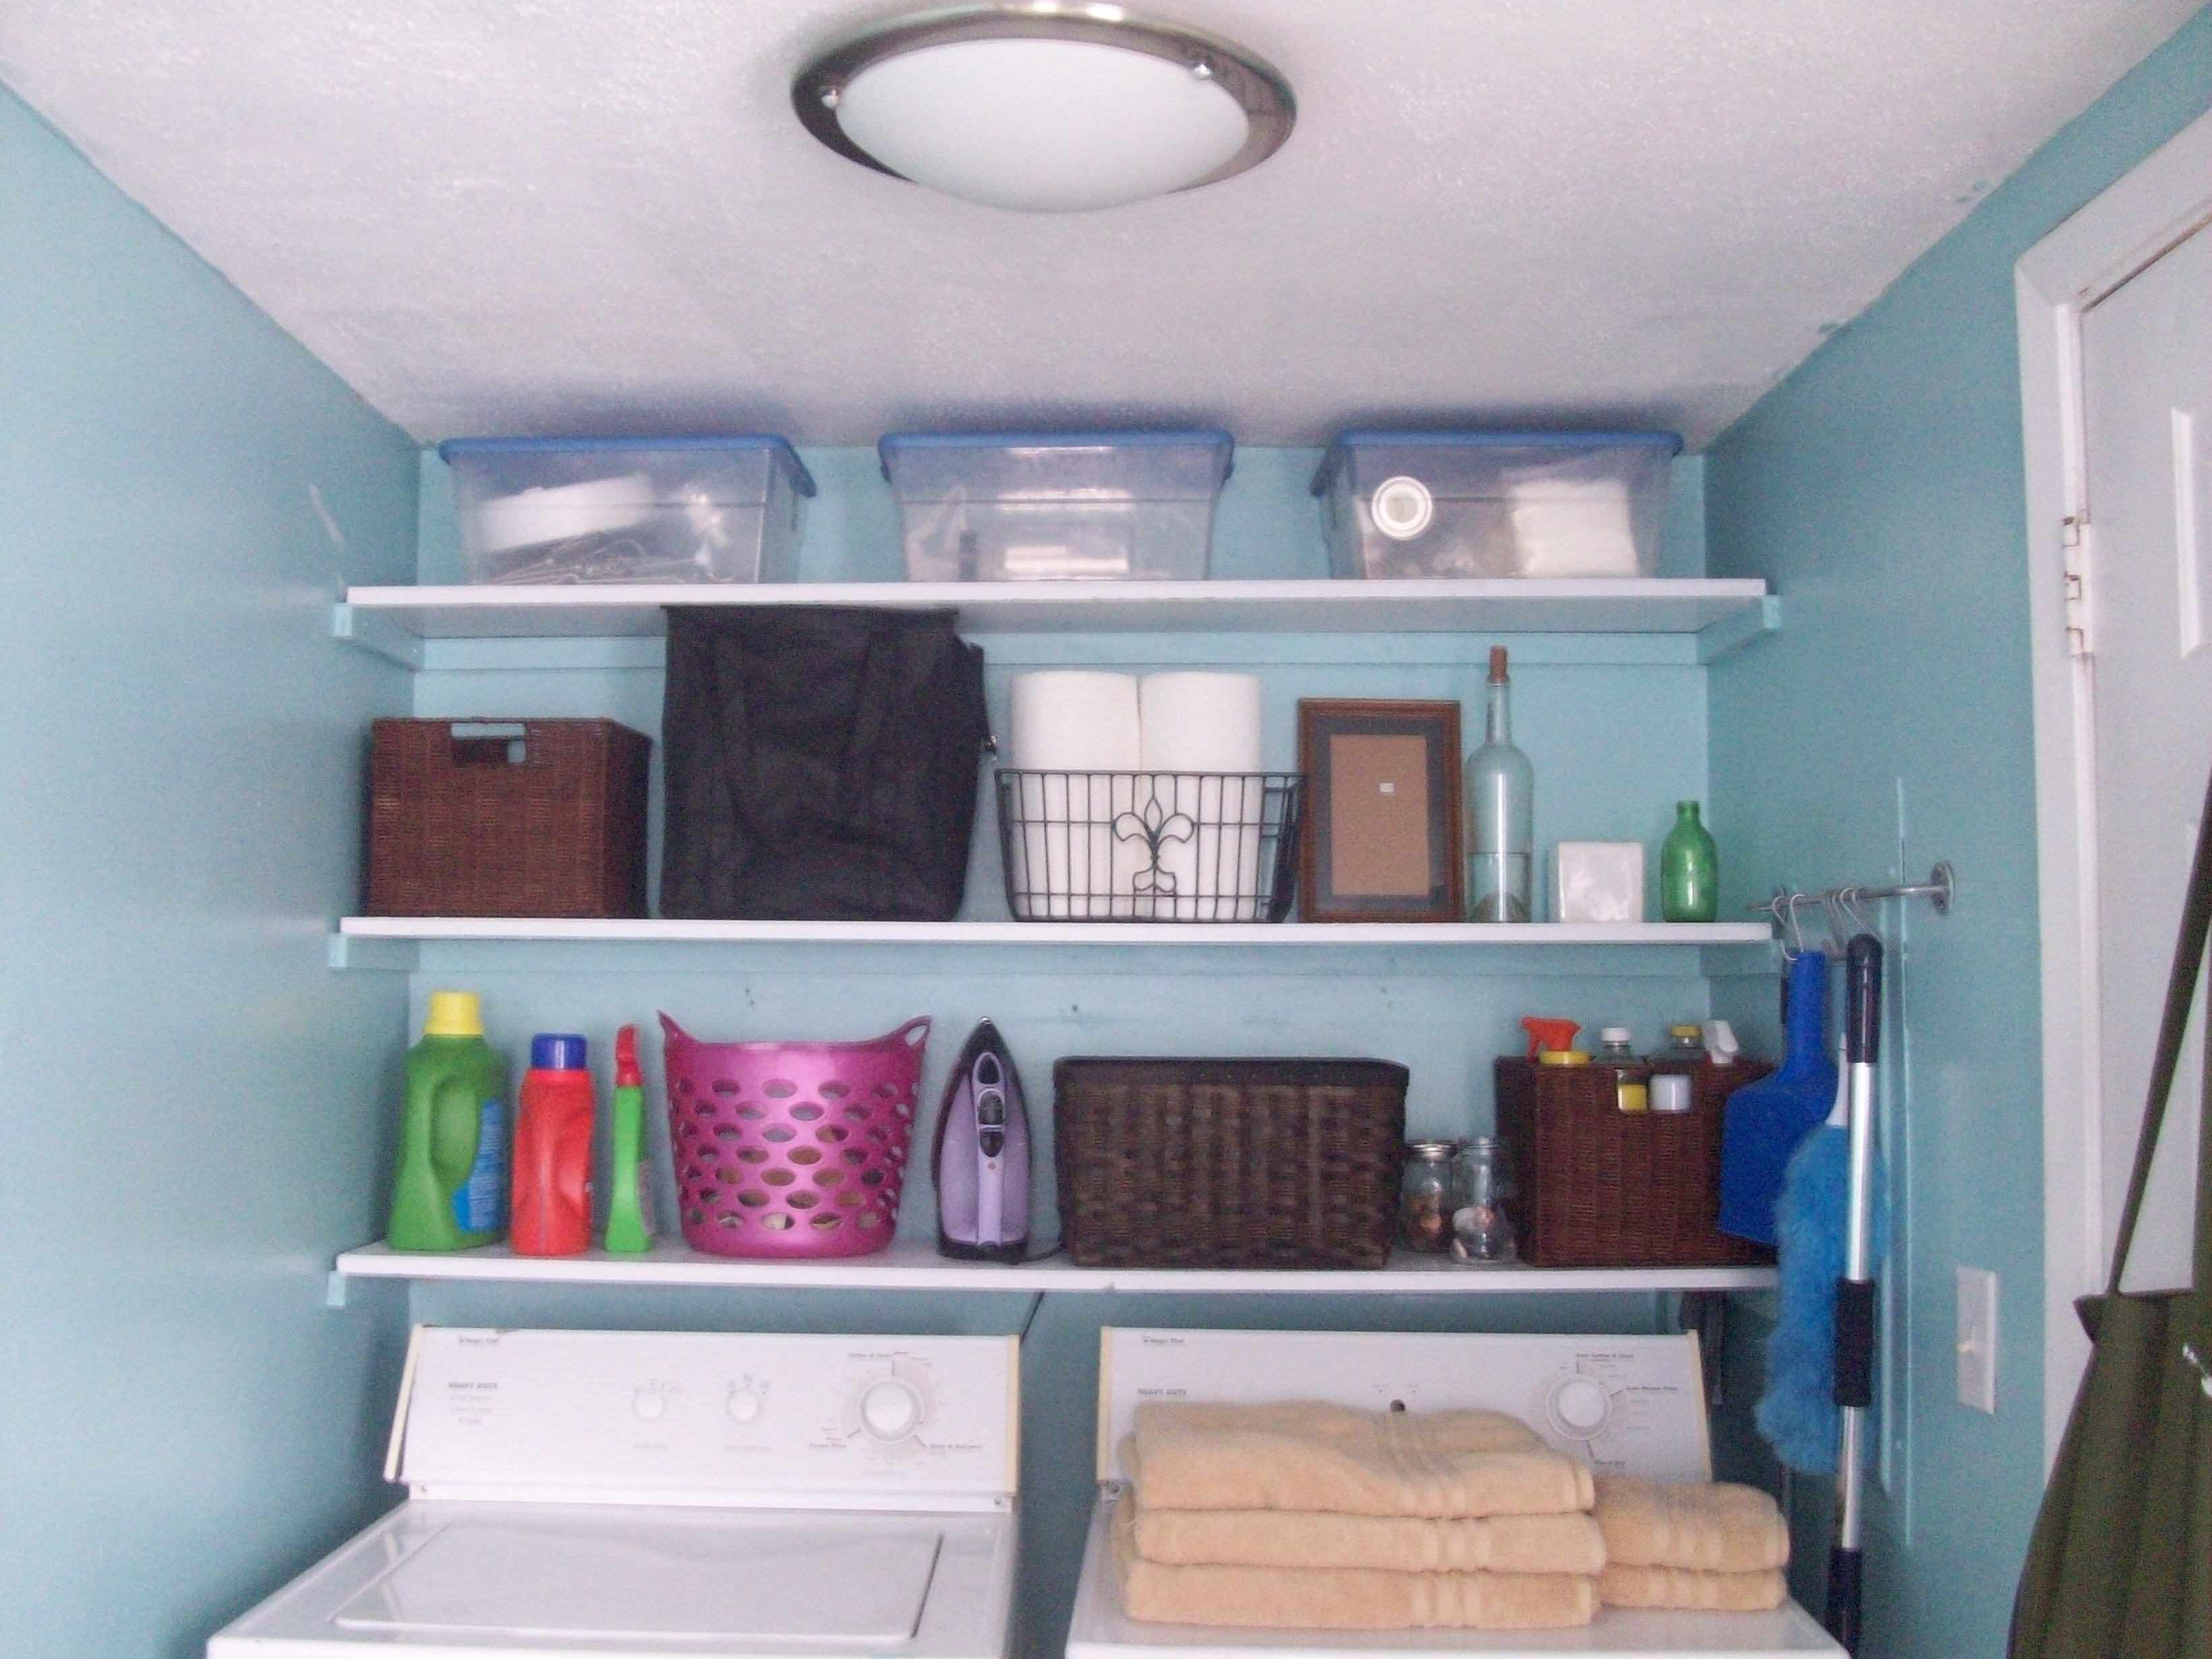 Beachy Blue Laundry Room | Living Well on the Cheap